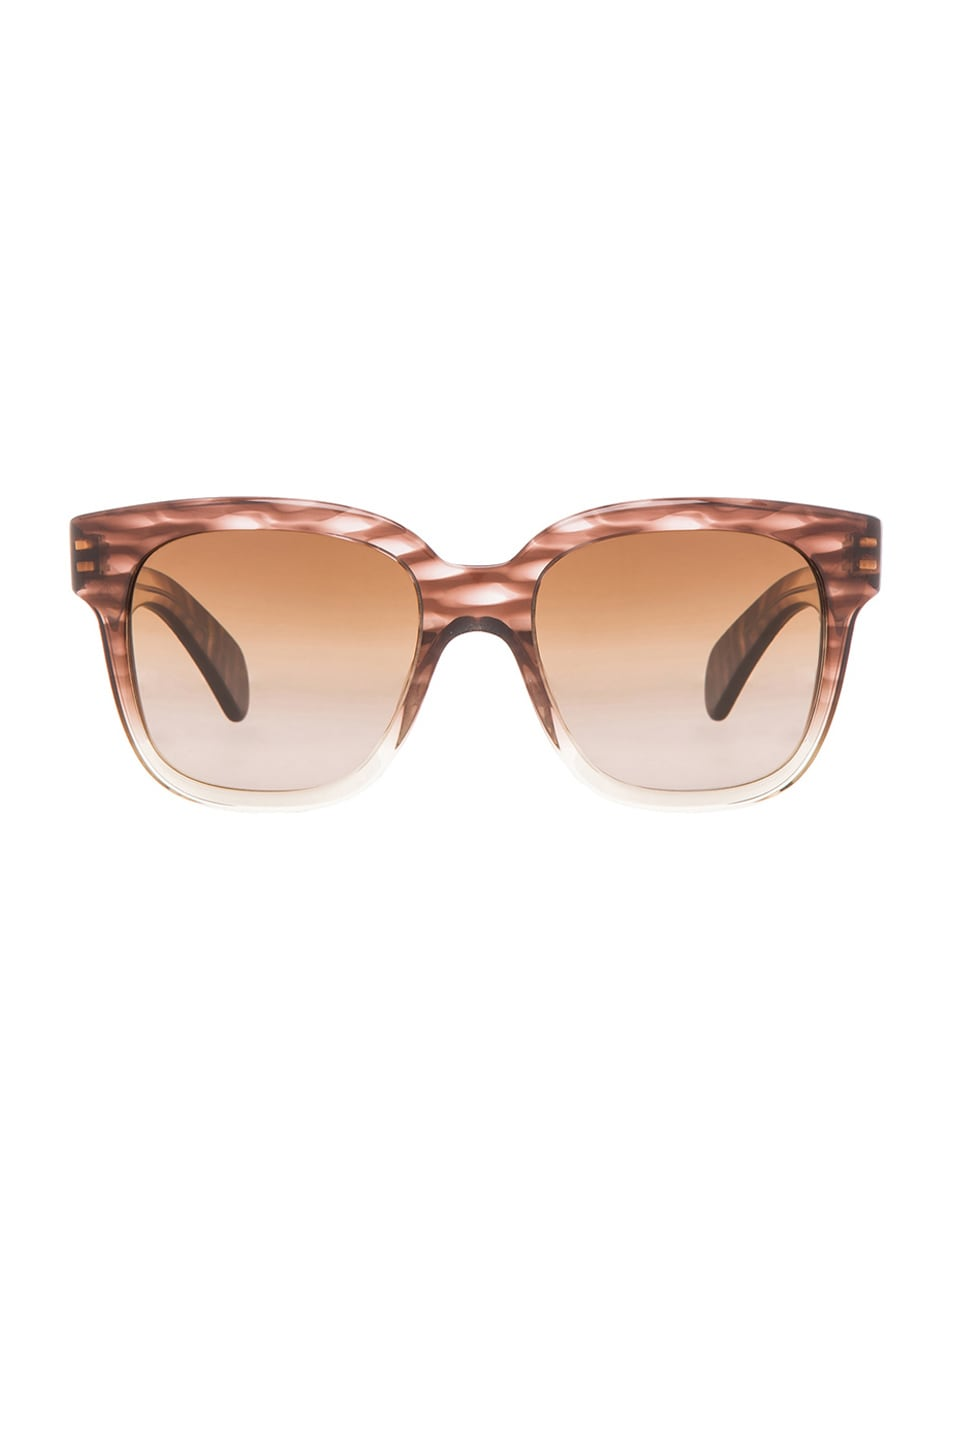 Image 1 of Oliver Peoples Brinley Sunglasses in Henna Gradient